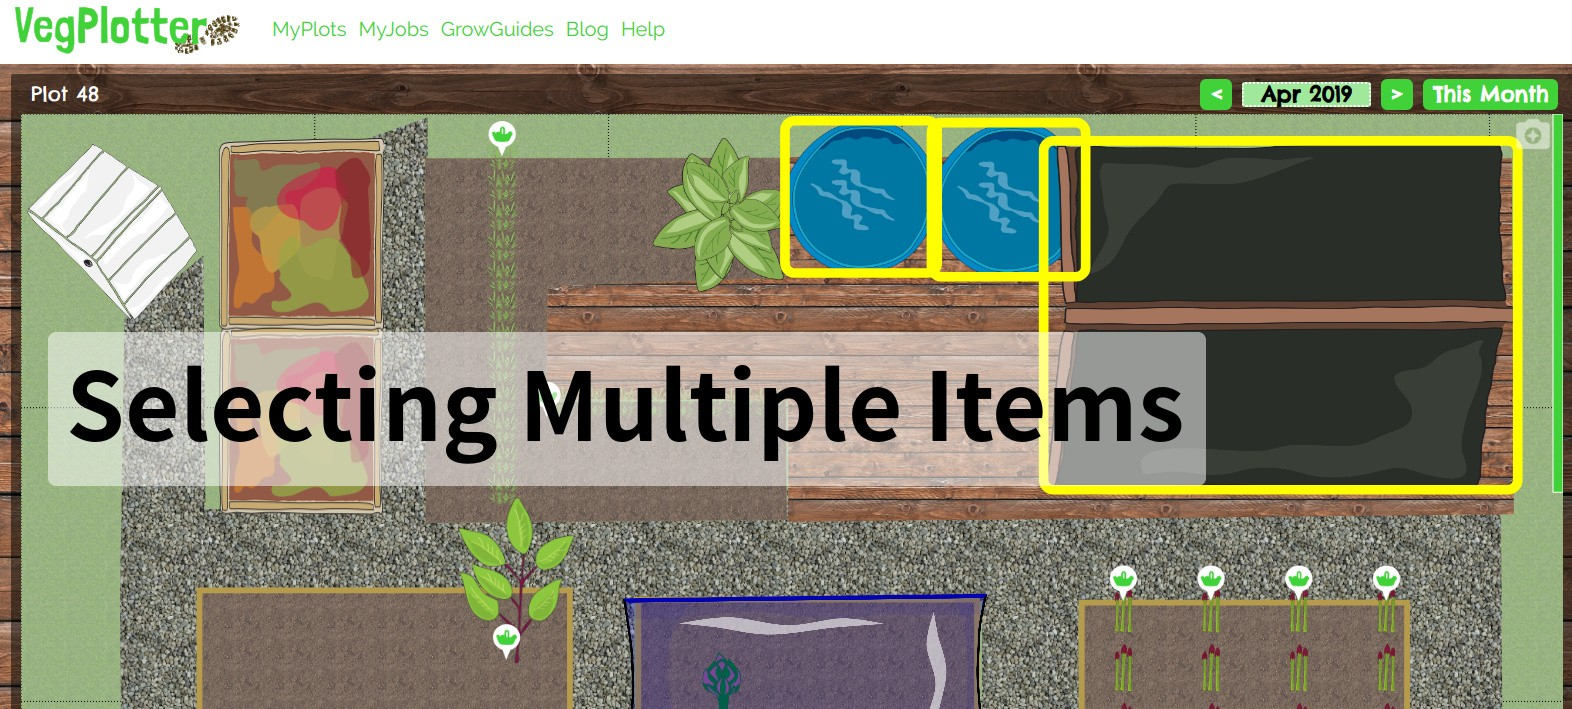 How to select and move items as a group in VegPlotter's free vegetable garden planner